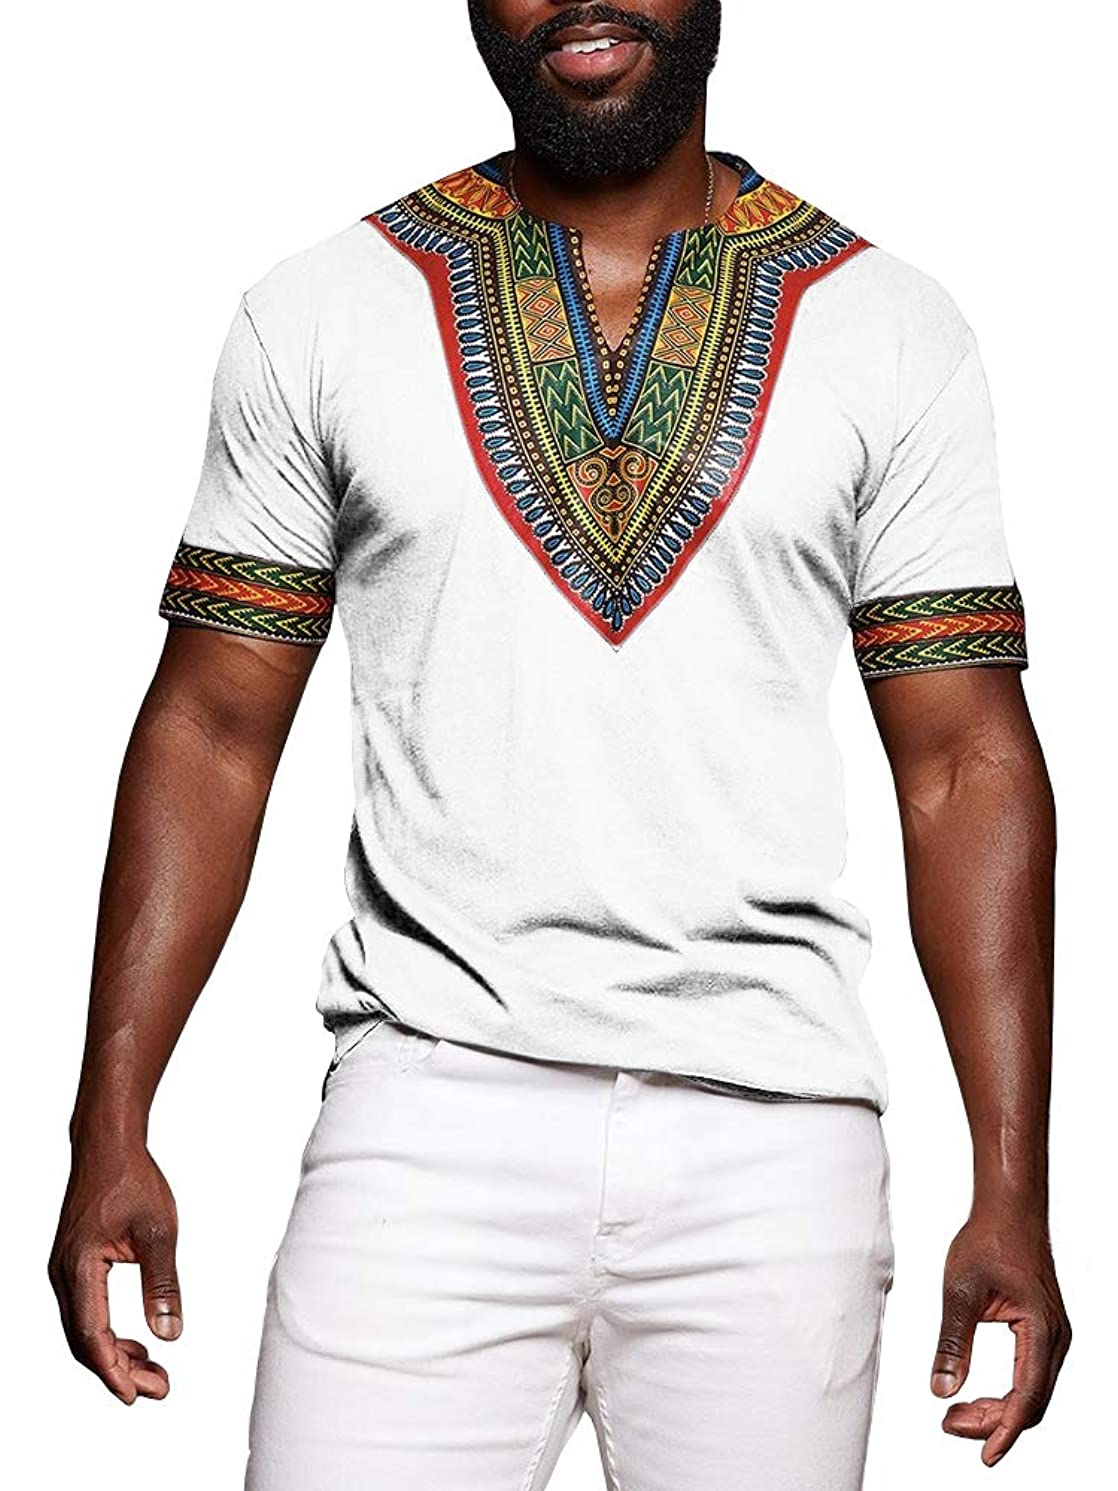 Makkrom Mens African Tribal Dashiki Floral Short Sleeve T Shirt Blouse Tops